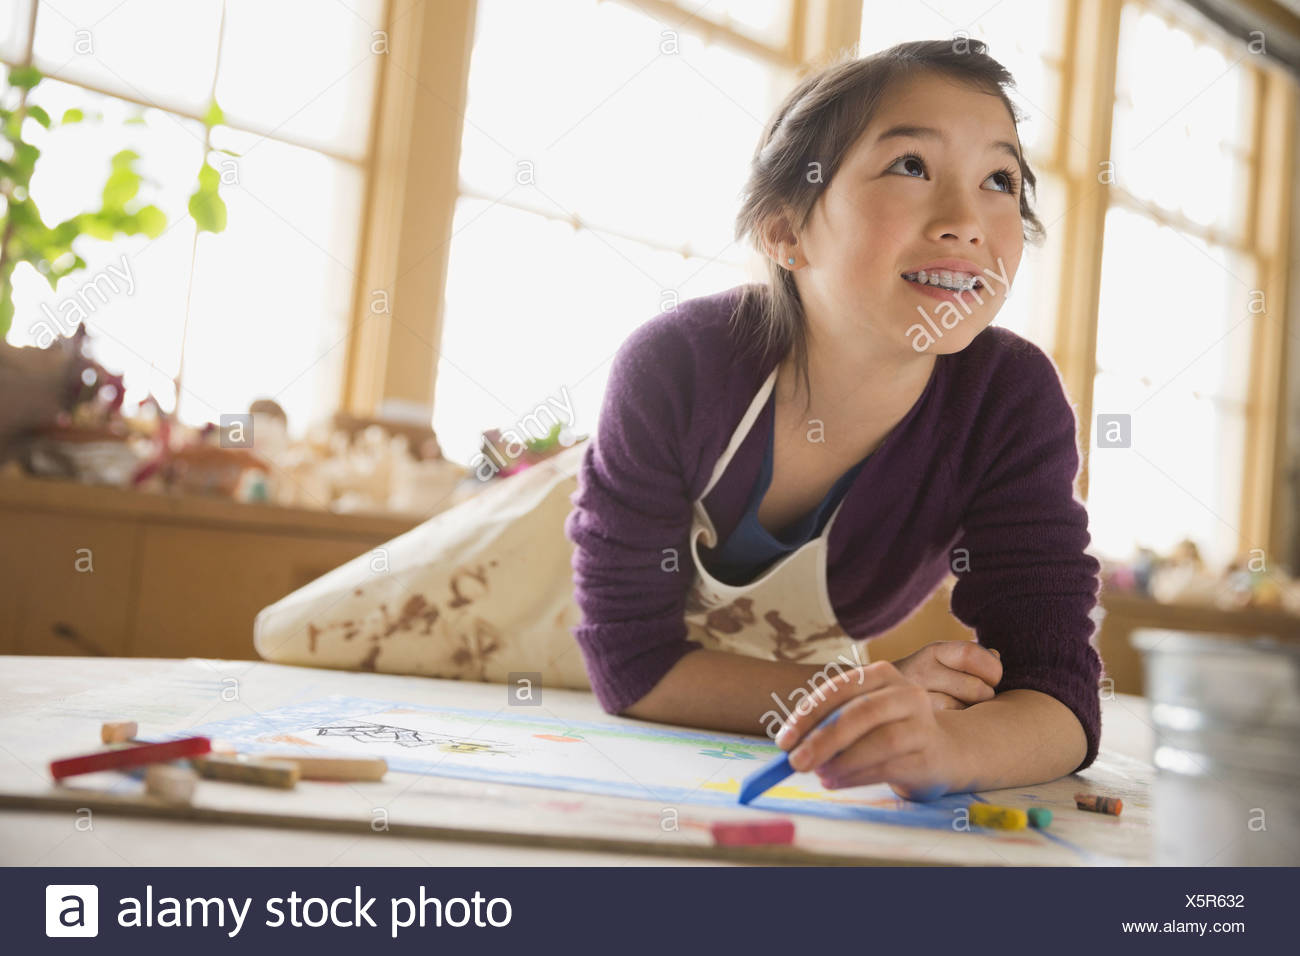 Girl drawing with pastels in art class - Stock Image